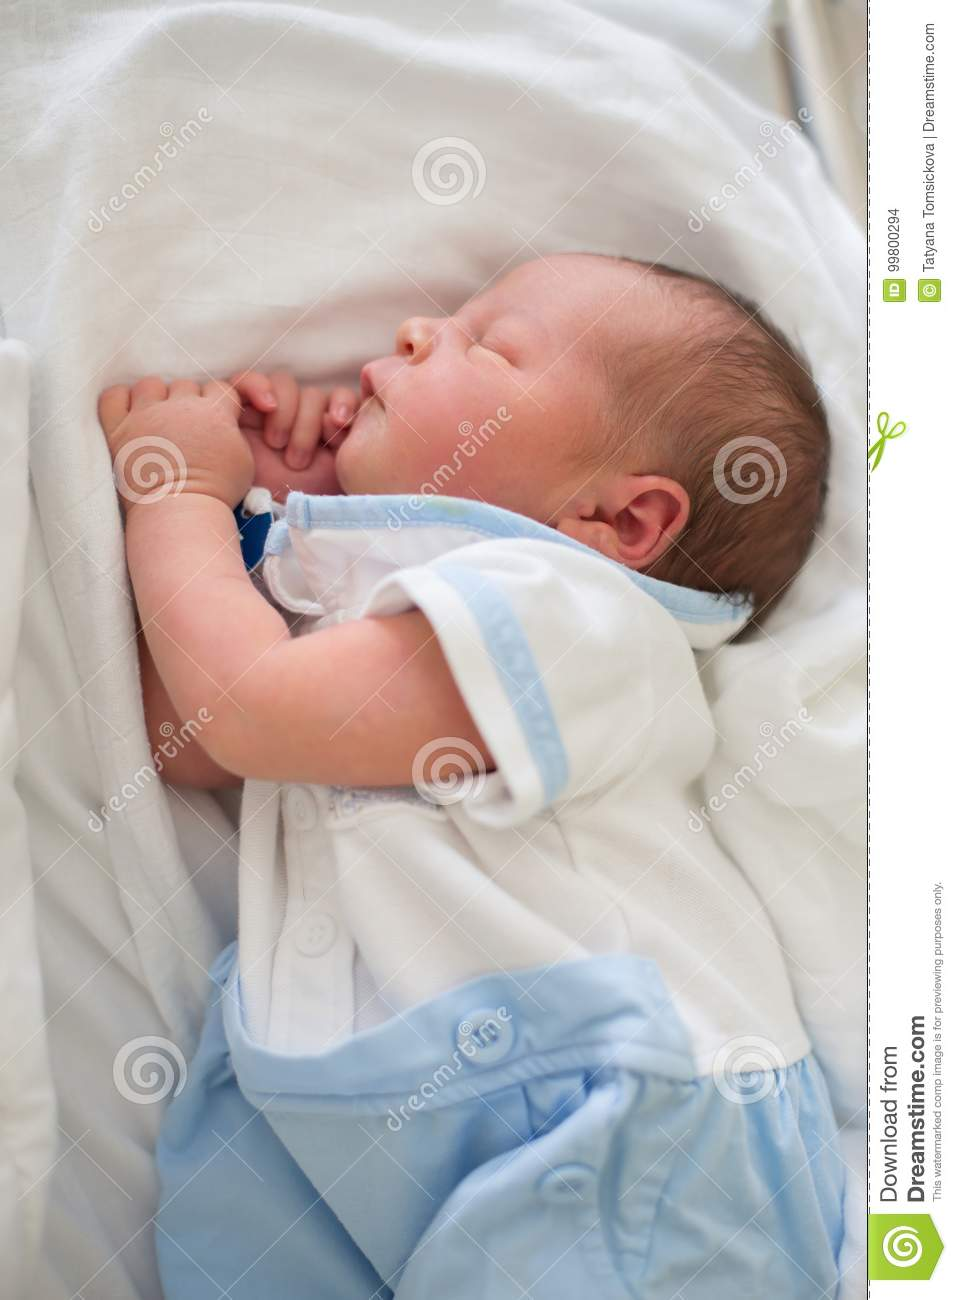 Goede Newborn Baby Laying In Crib In Prenatal Hospital Stock Photo CL-56